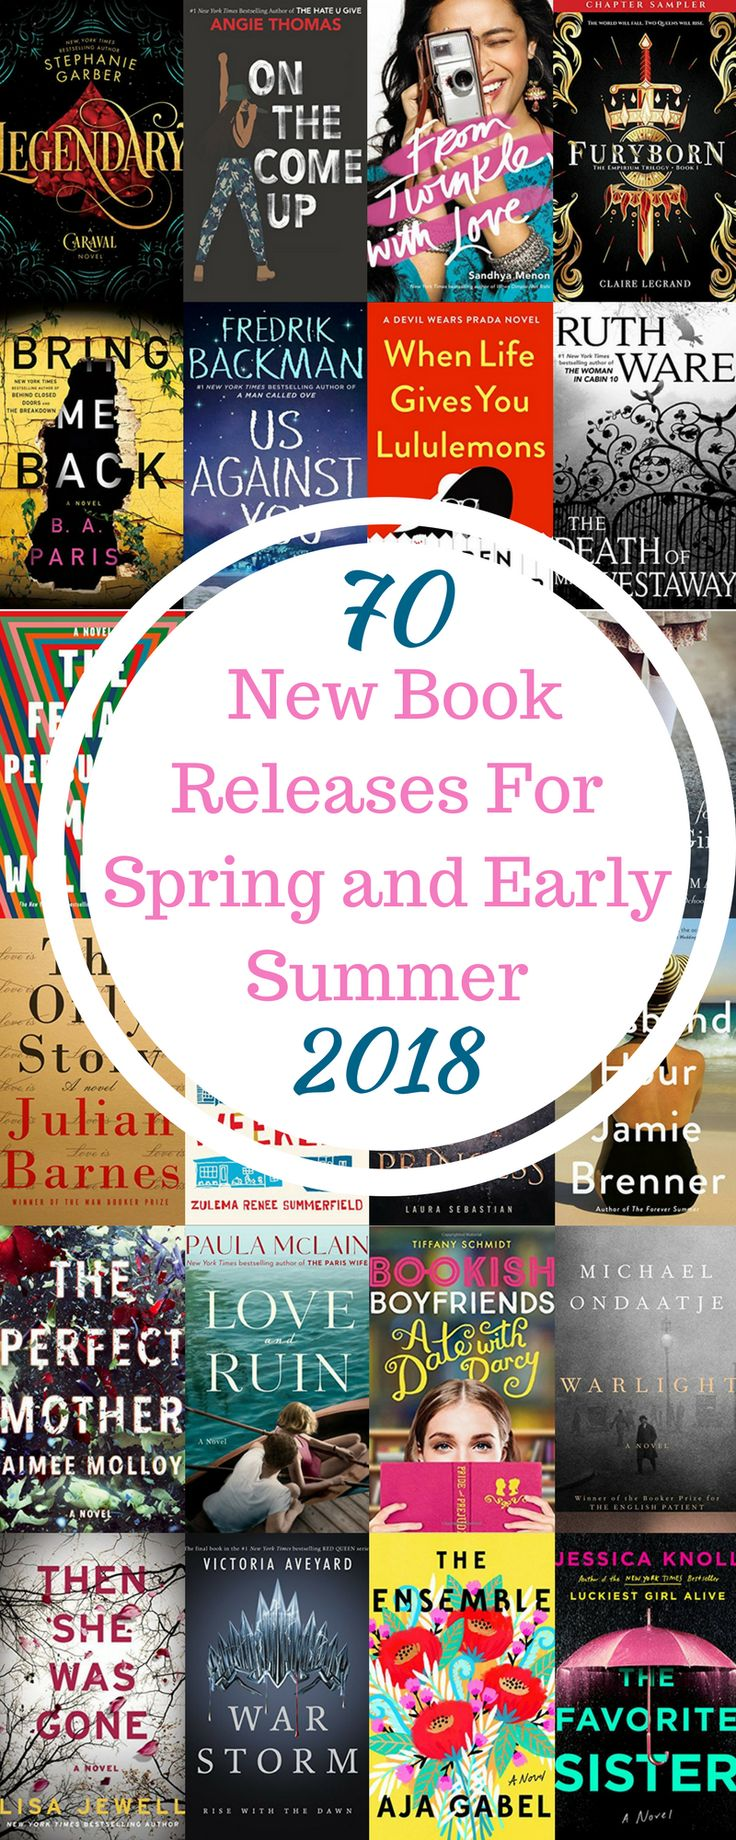 Pin Now, Read Later. This comprehensive list of the hottest new book releases will ensure you always have a book to read on vacation. From Contemporary fiction to psychological thrillers, historical fiction to romance, there is something for even this pickiest reader on this list!